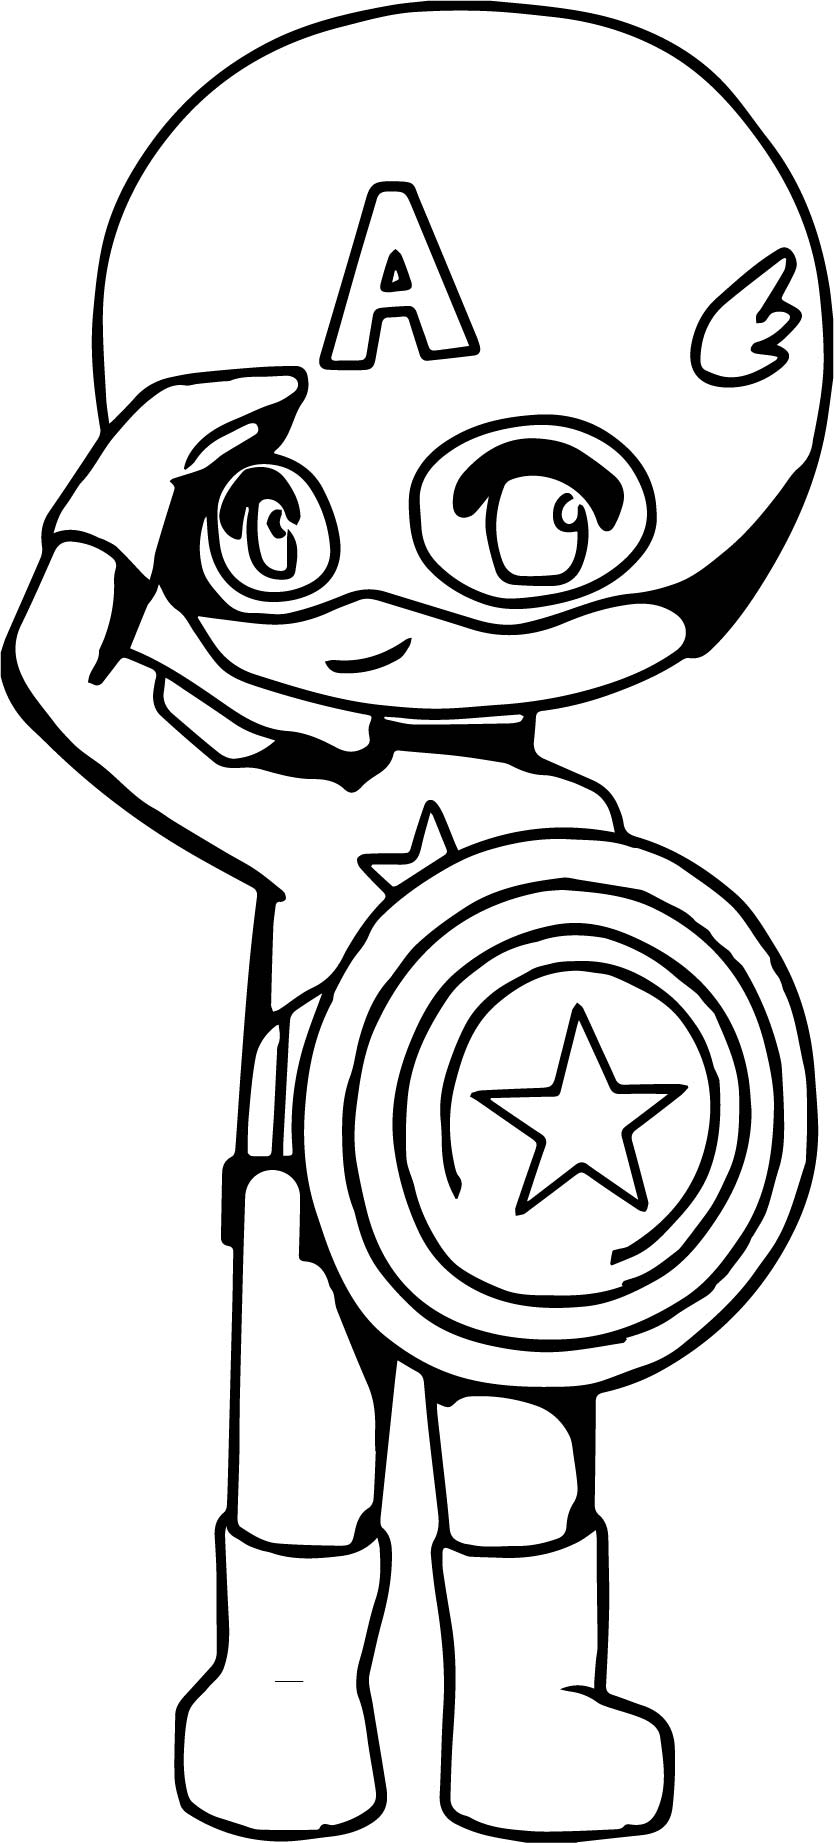 captain america child cartoon coloring page wecoloringpage